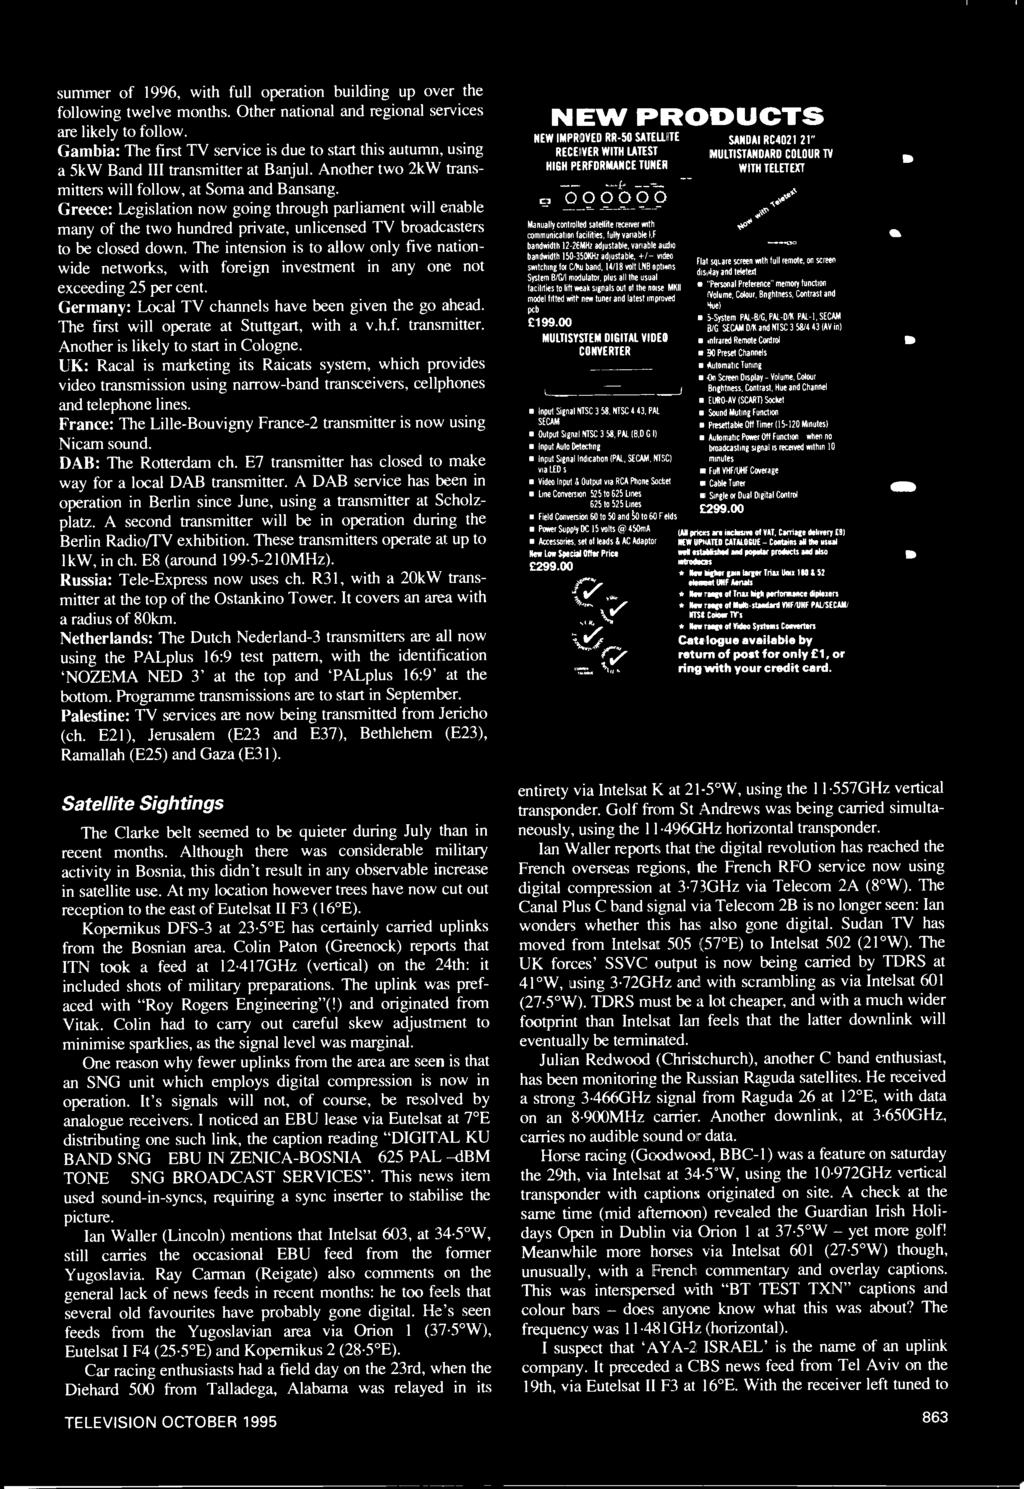 Spares guide free tvvideo distribution techniques inside the 1111 summer of 1996 with full operation building up over the following twelve months fandeluxe Image collections